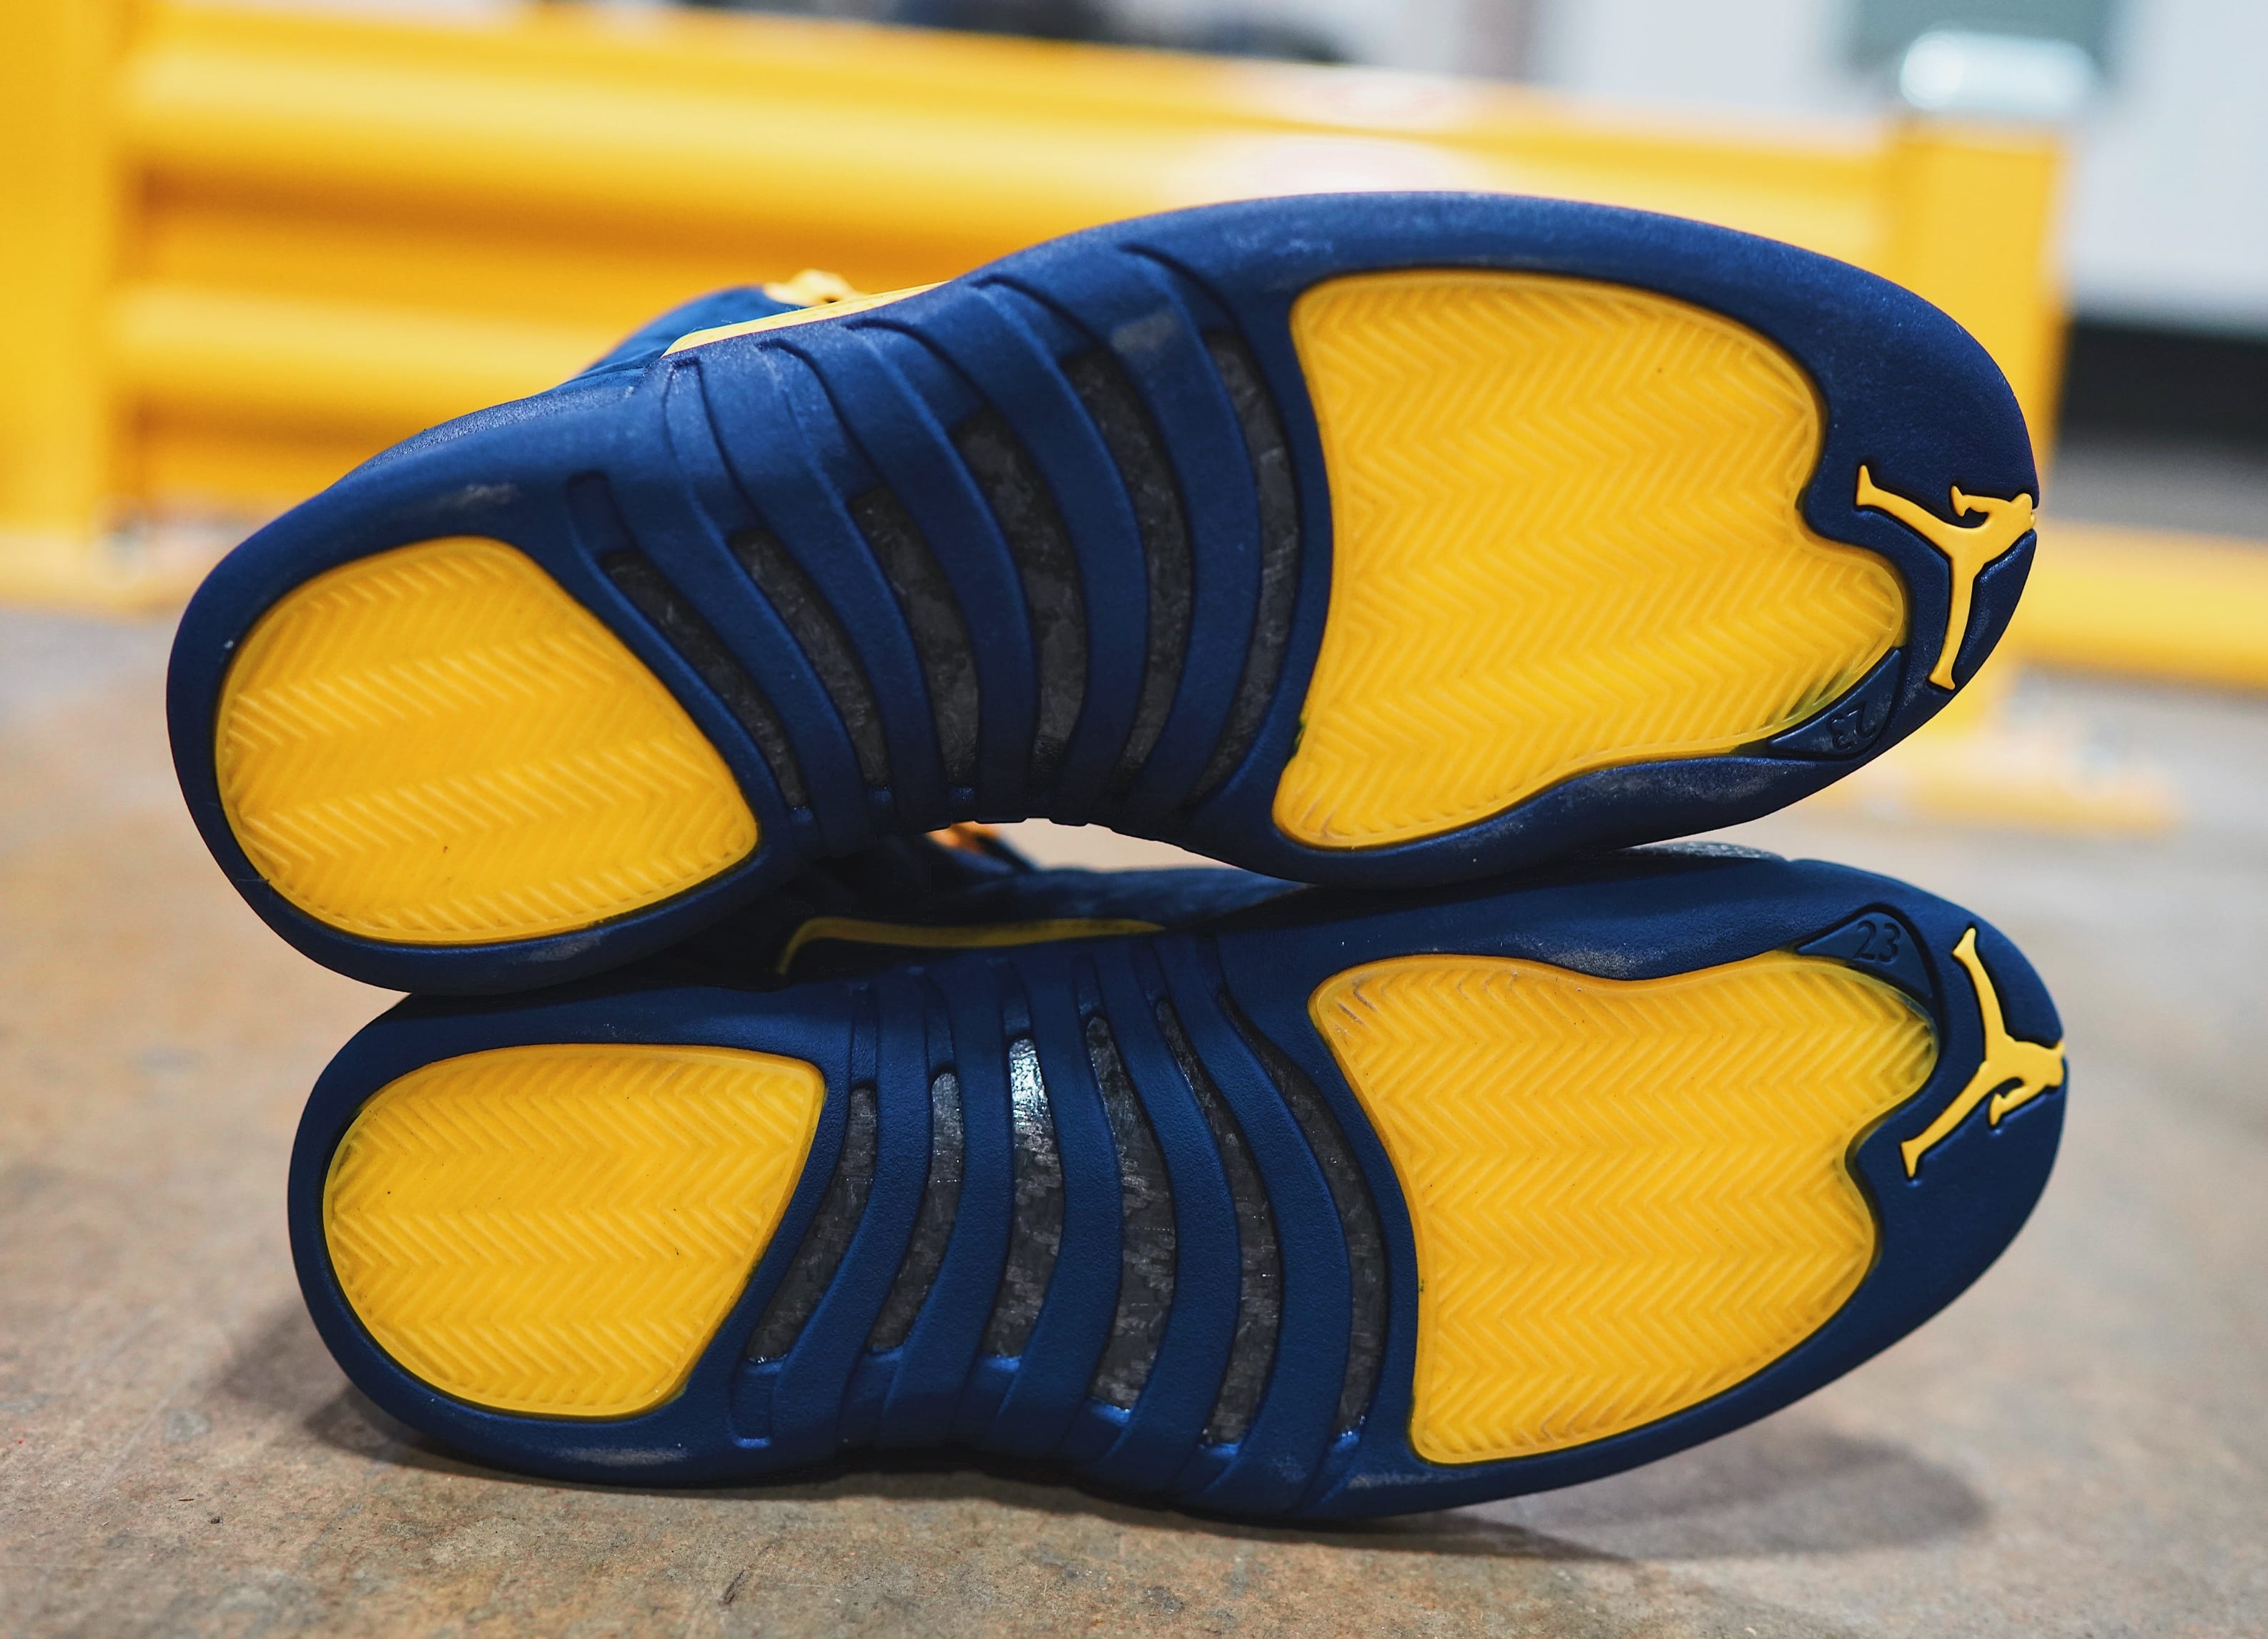 Air Jordan 12 'Michigan' BQ3180-407 (Sole)